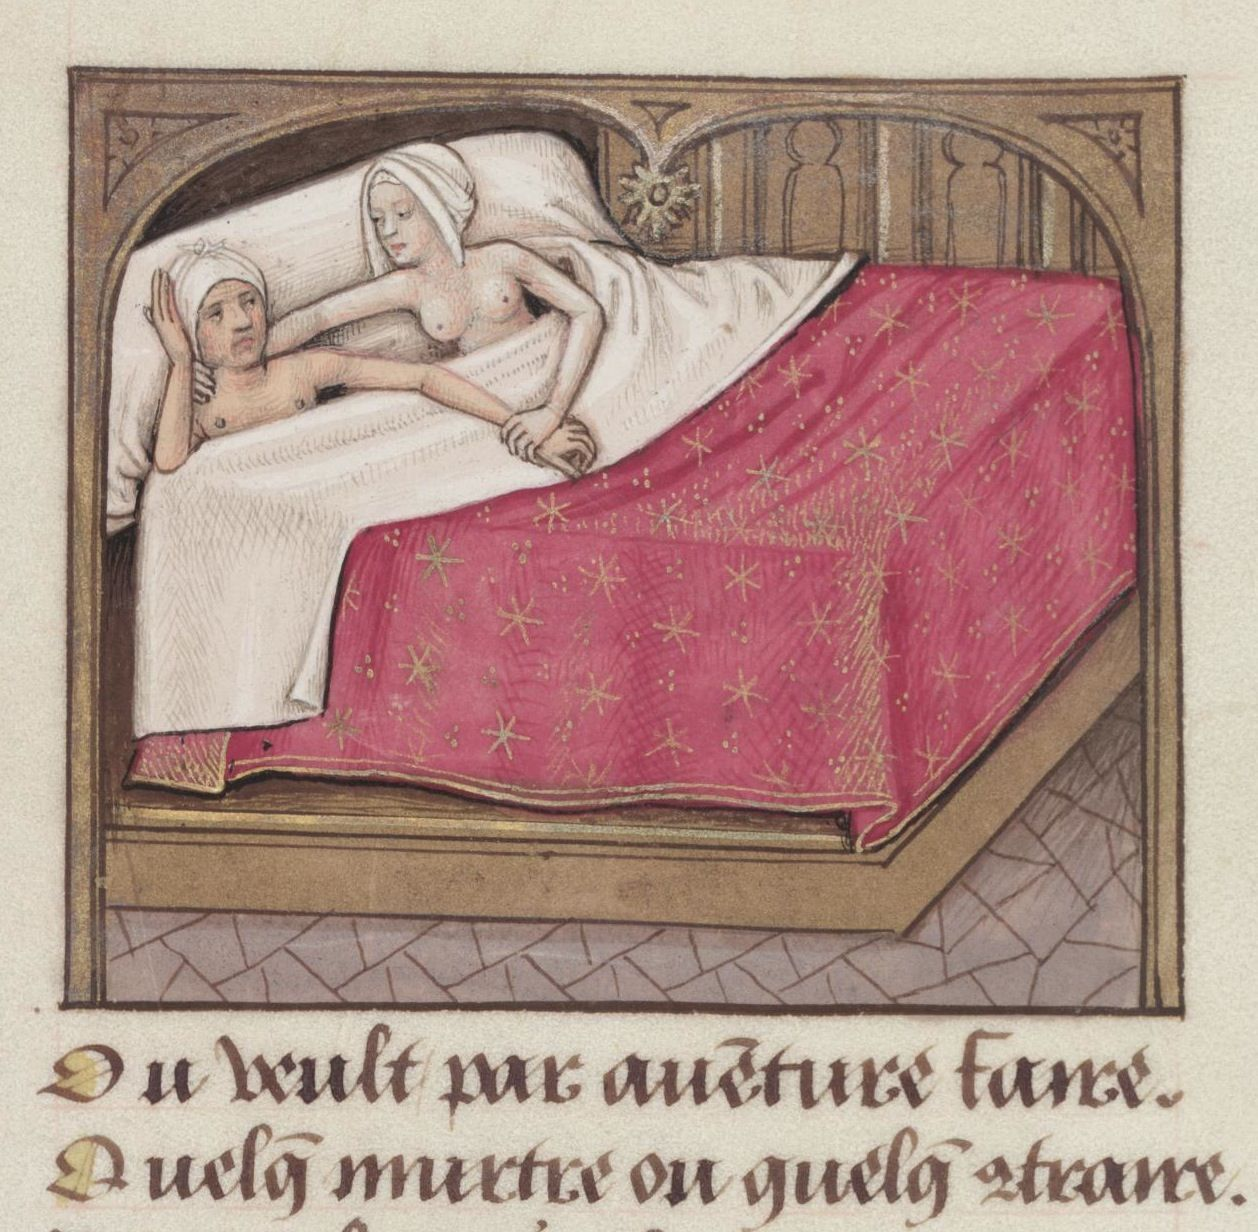 Roman de la Rose, France 15th century. Bodleian Library, MS. Douce 195, fol. 118v